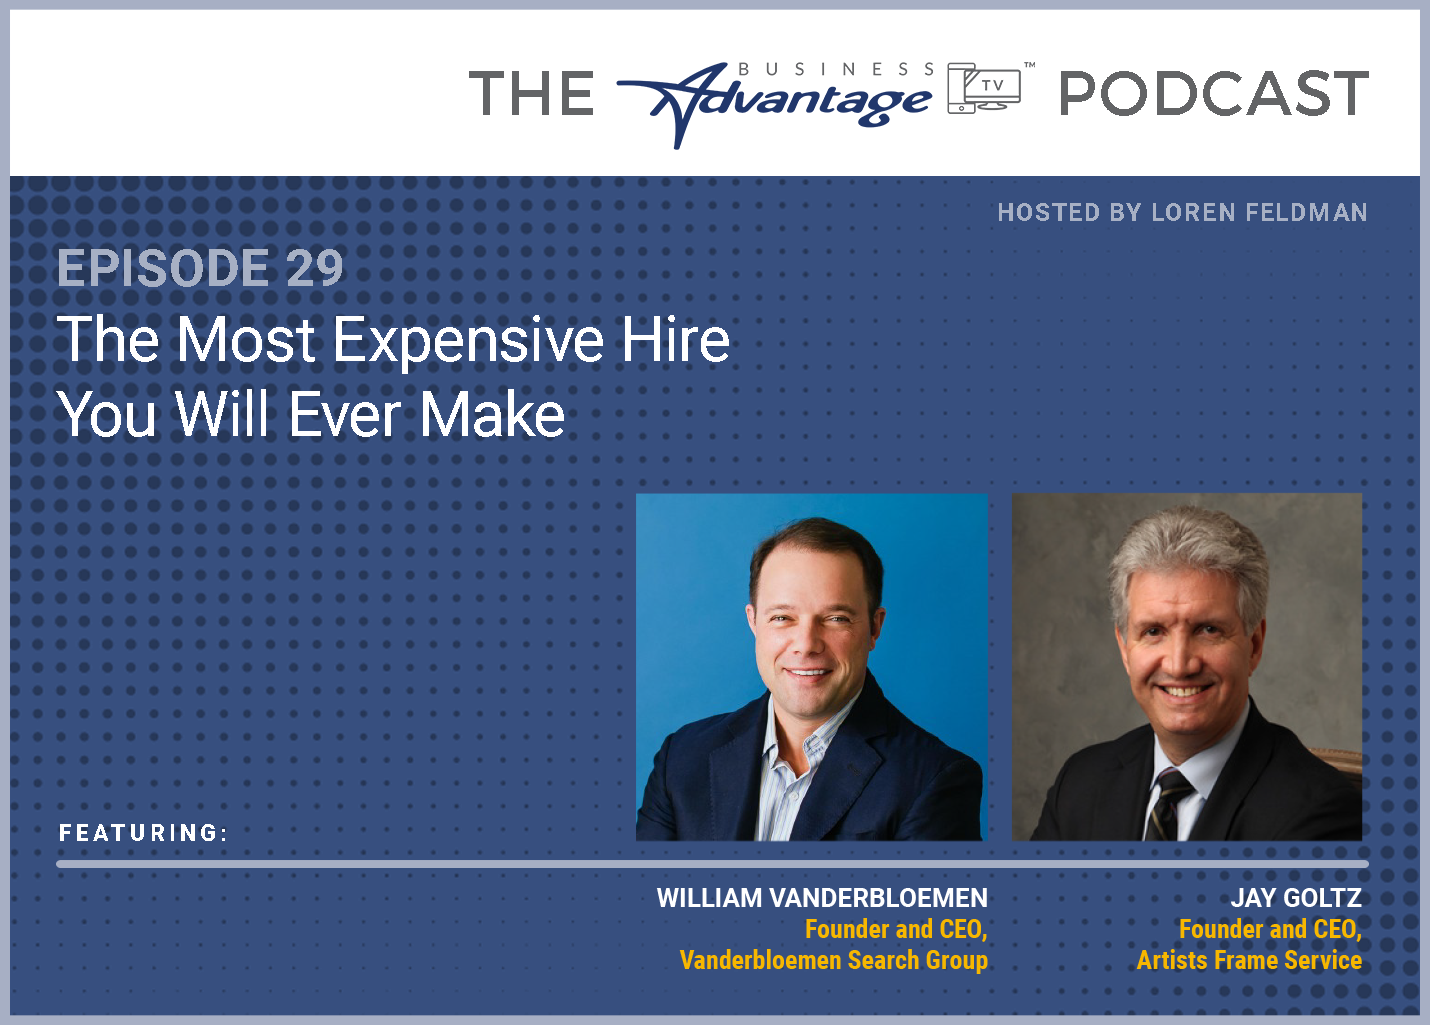 Episode 29: The Most Expensive Hire You Will Ever Make